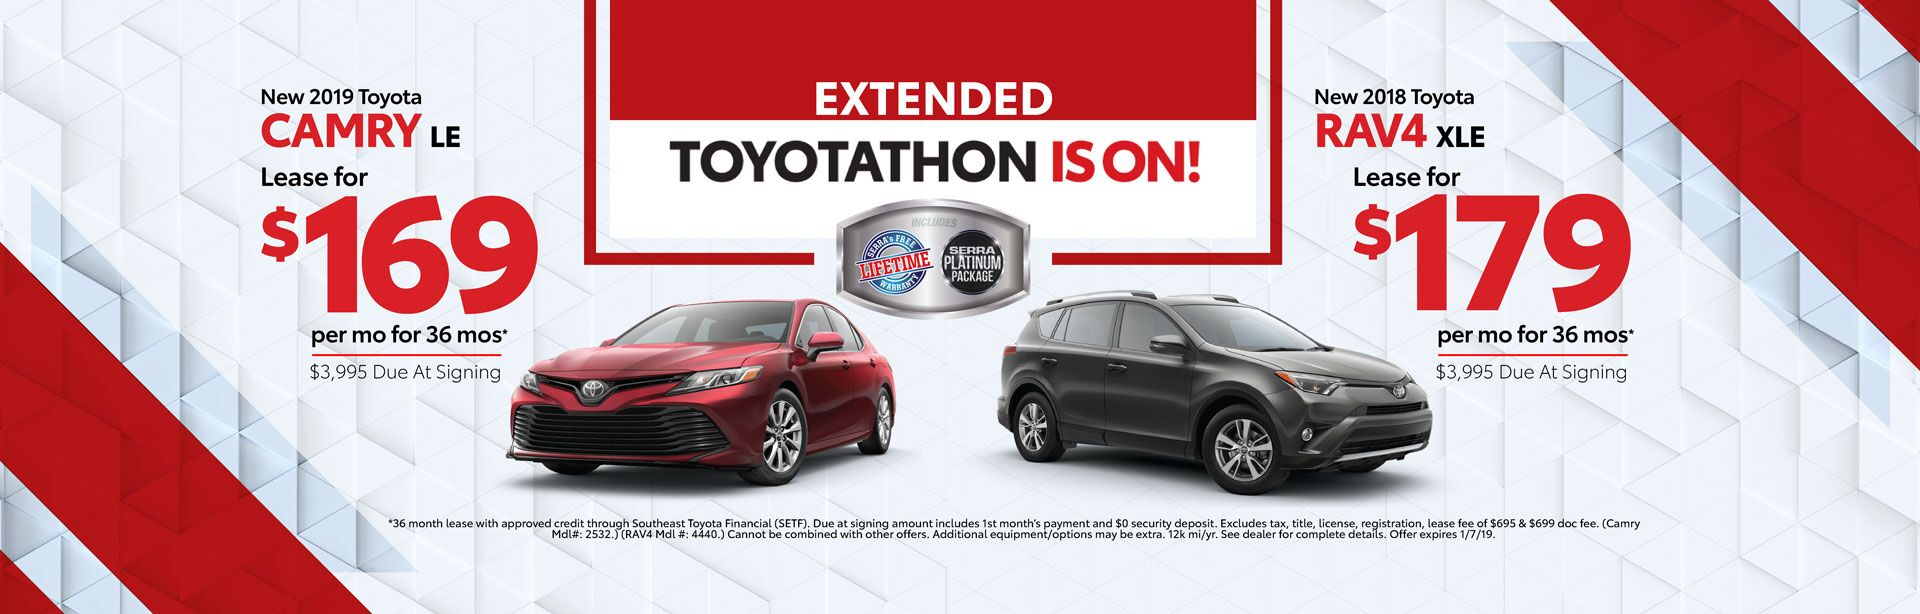 New Toyota Camry Lease Toyota Dealer Decatur Al